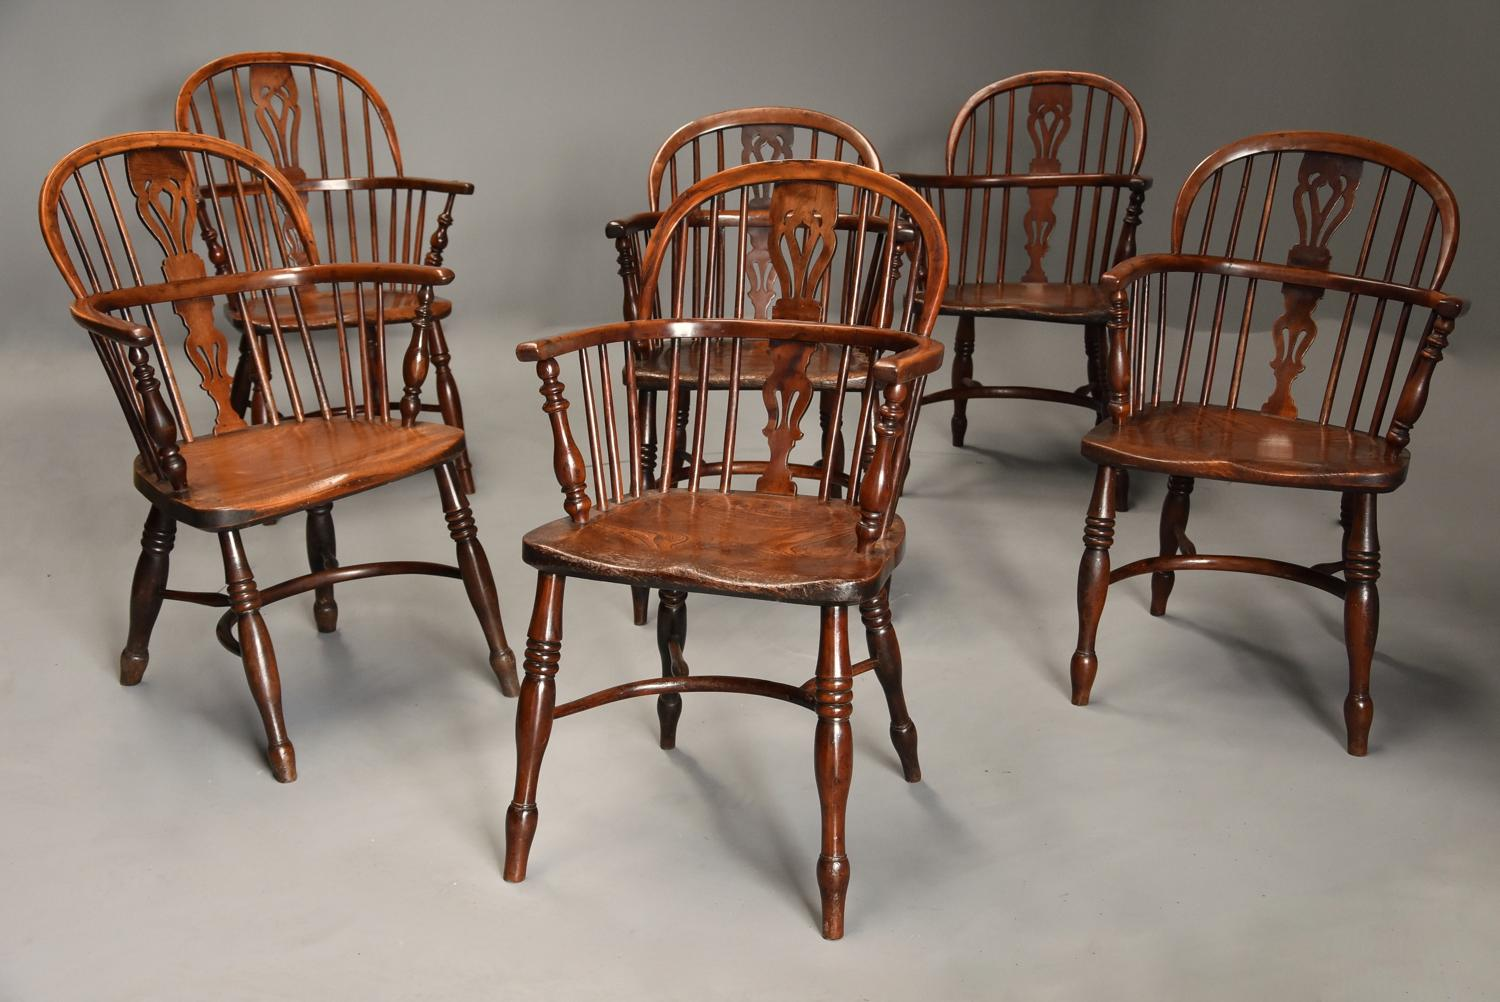 Mid 19thc well matched set of six yew wood low back Windsor armchairs